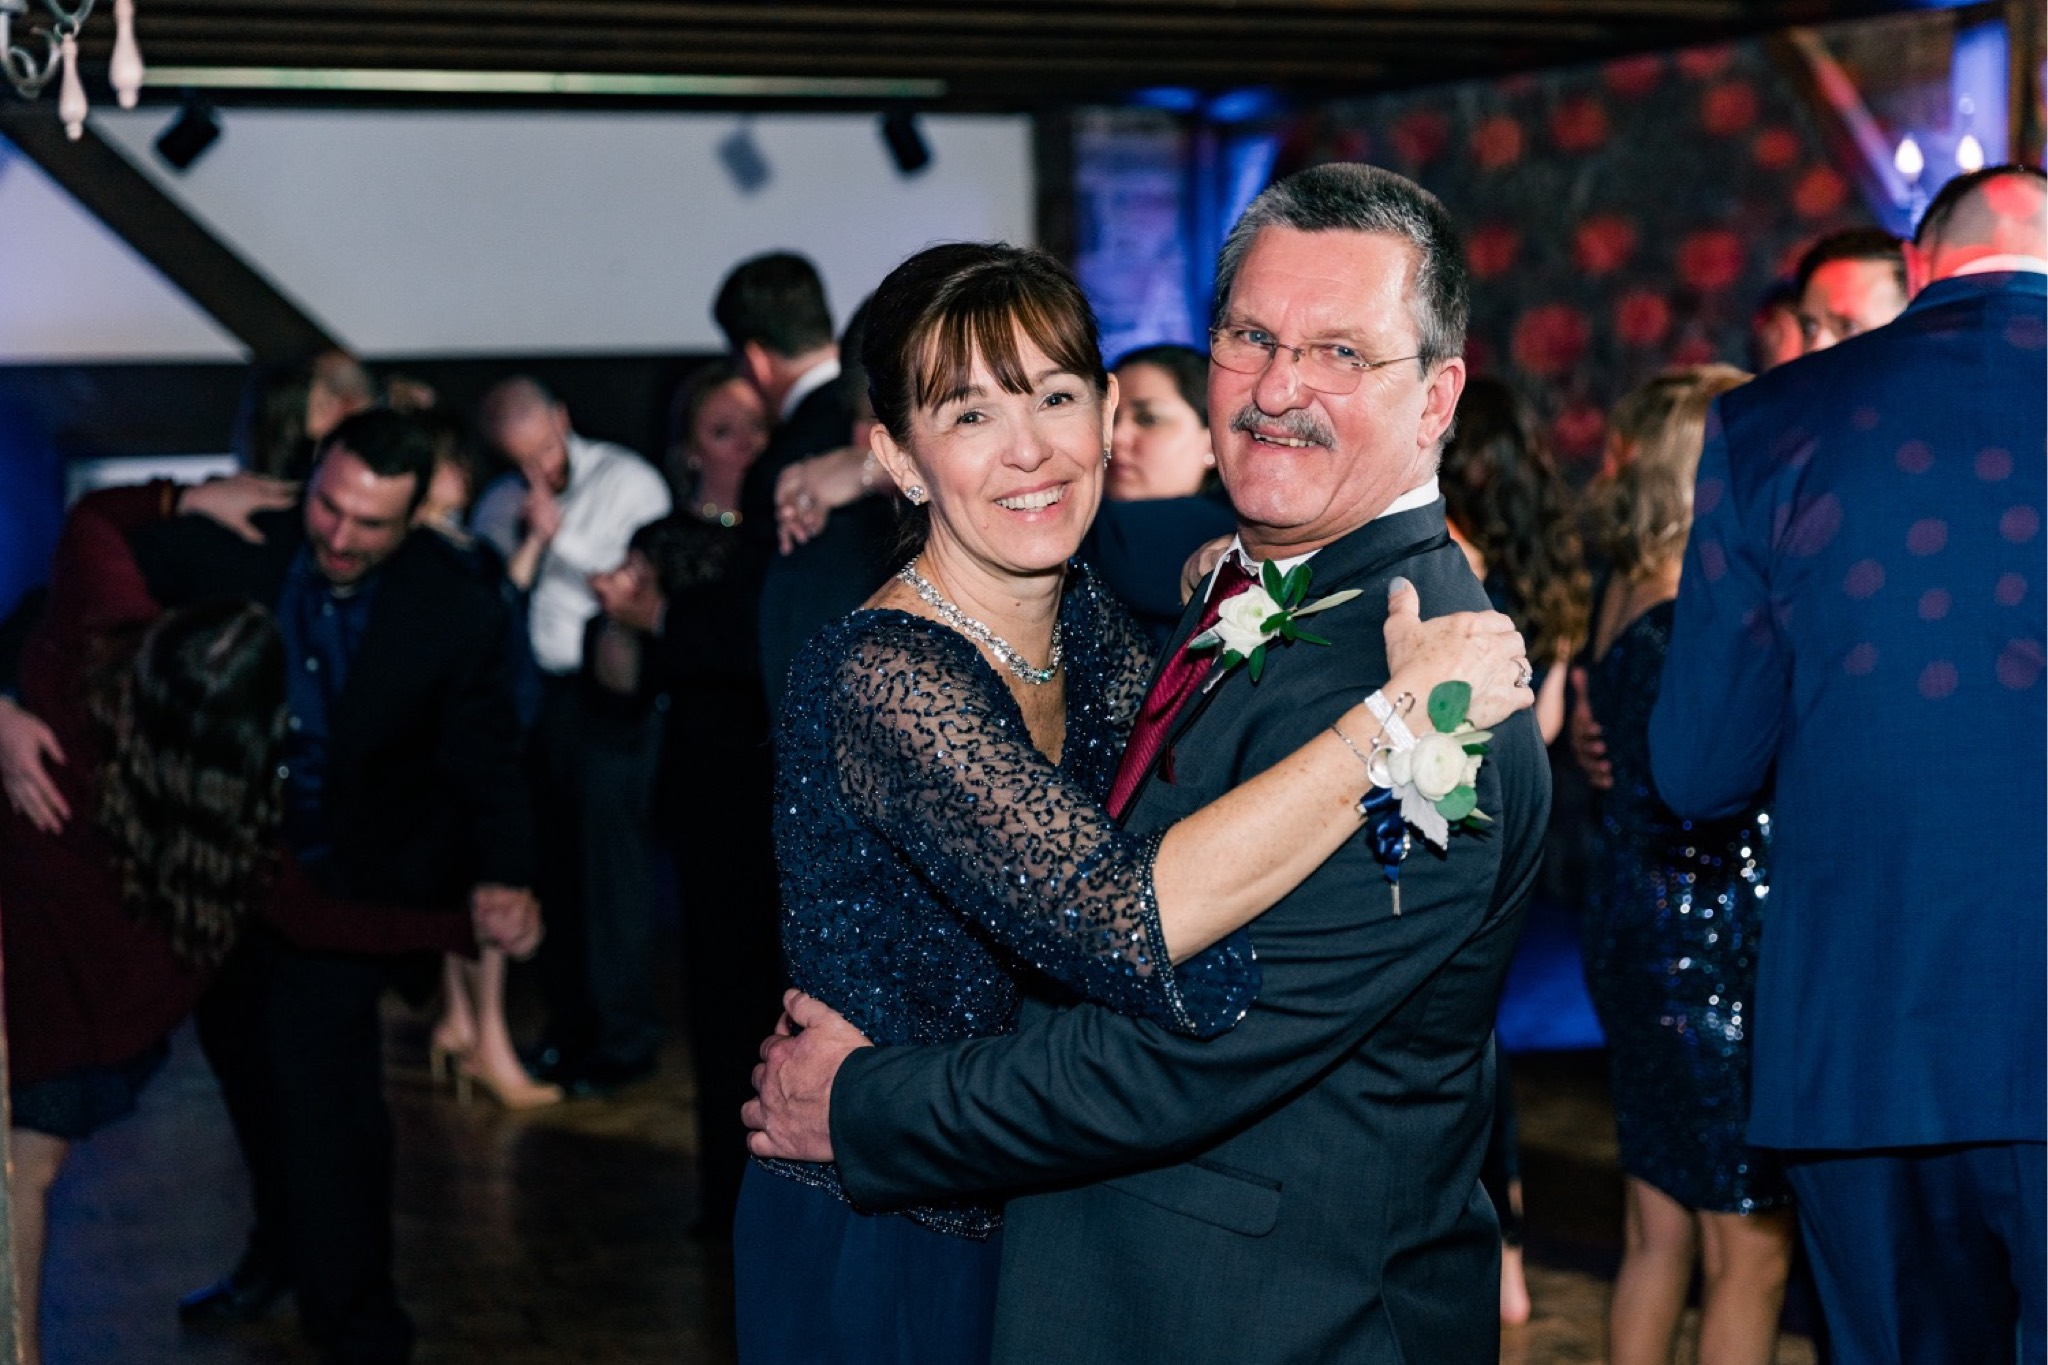 Steve & Casi Winter Wedding at The Barn on Bridge in Collegeville, PA Photos